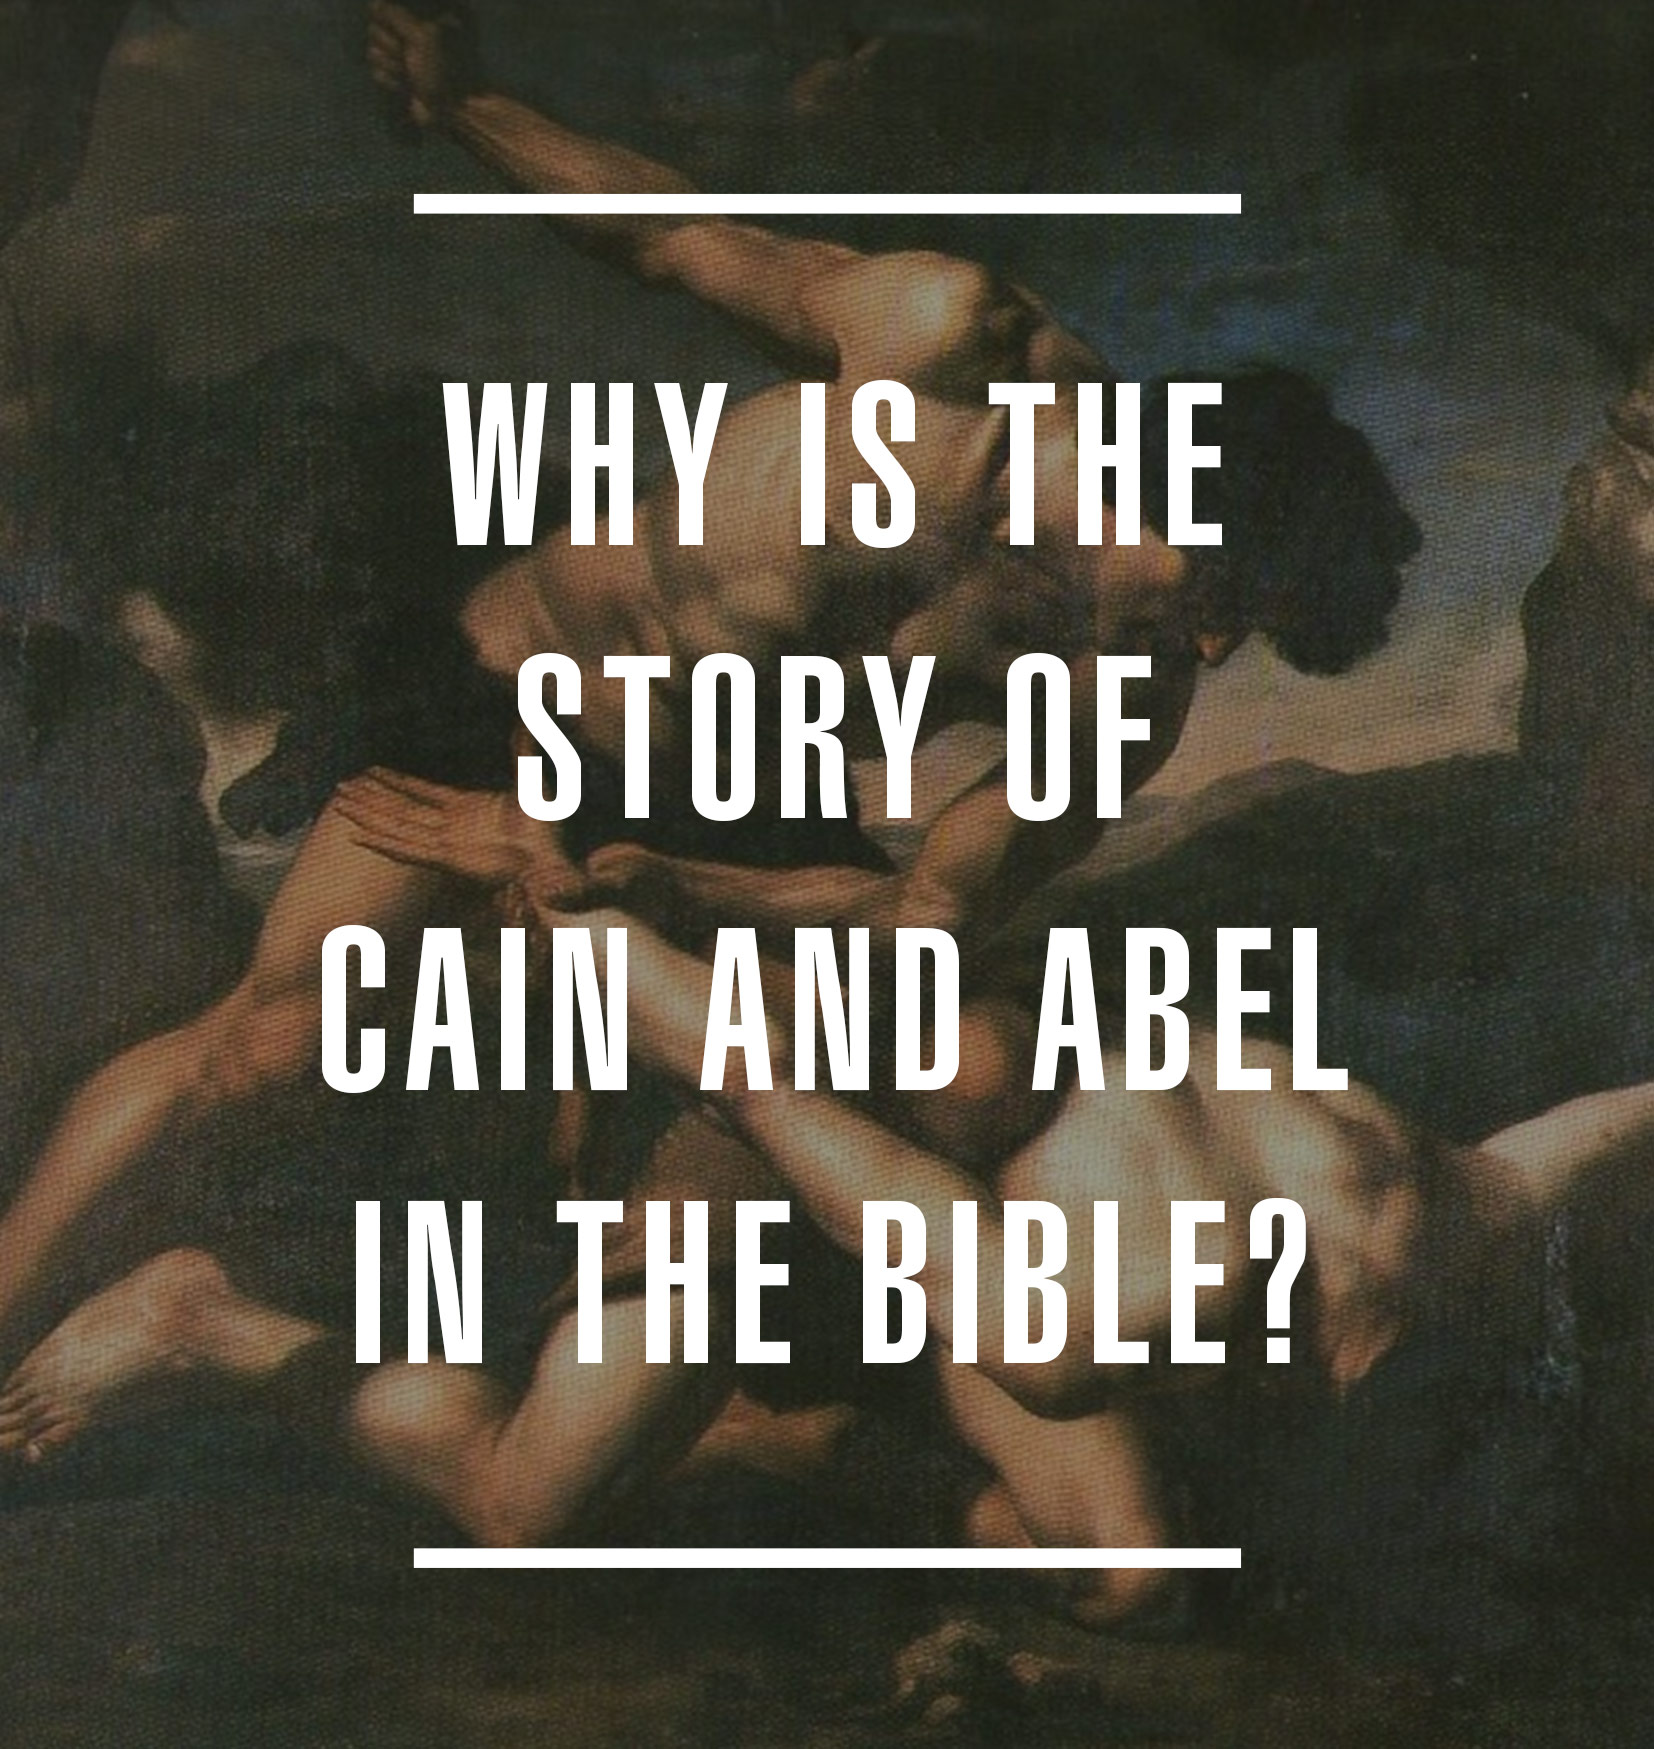 2016-09-07-cain-and-abel